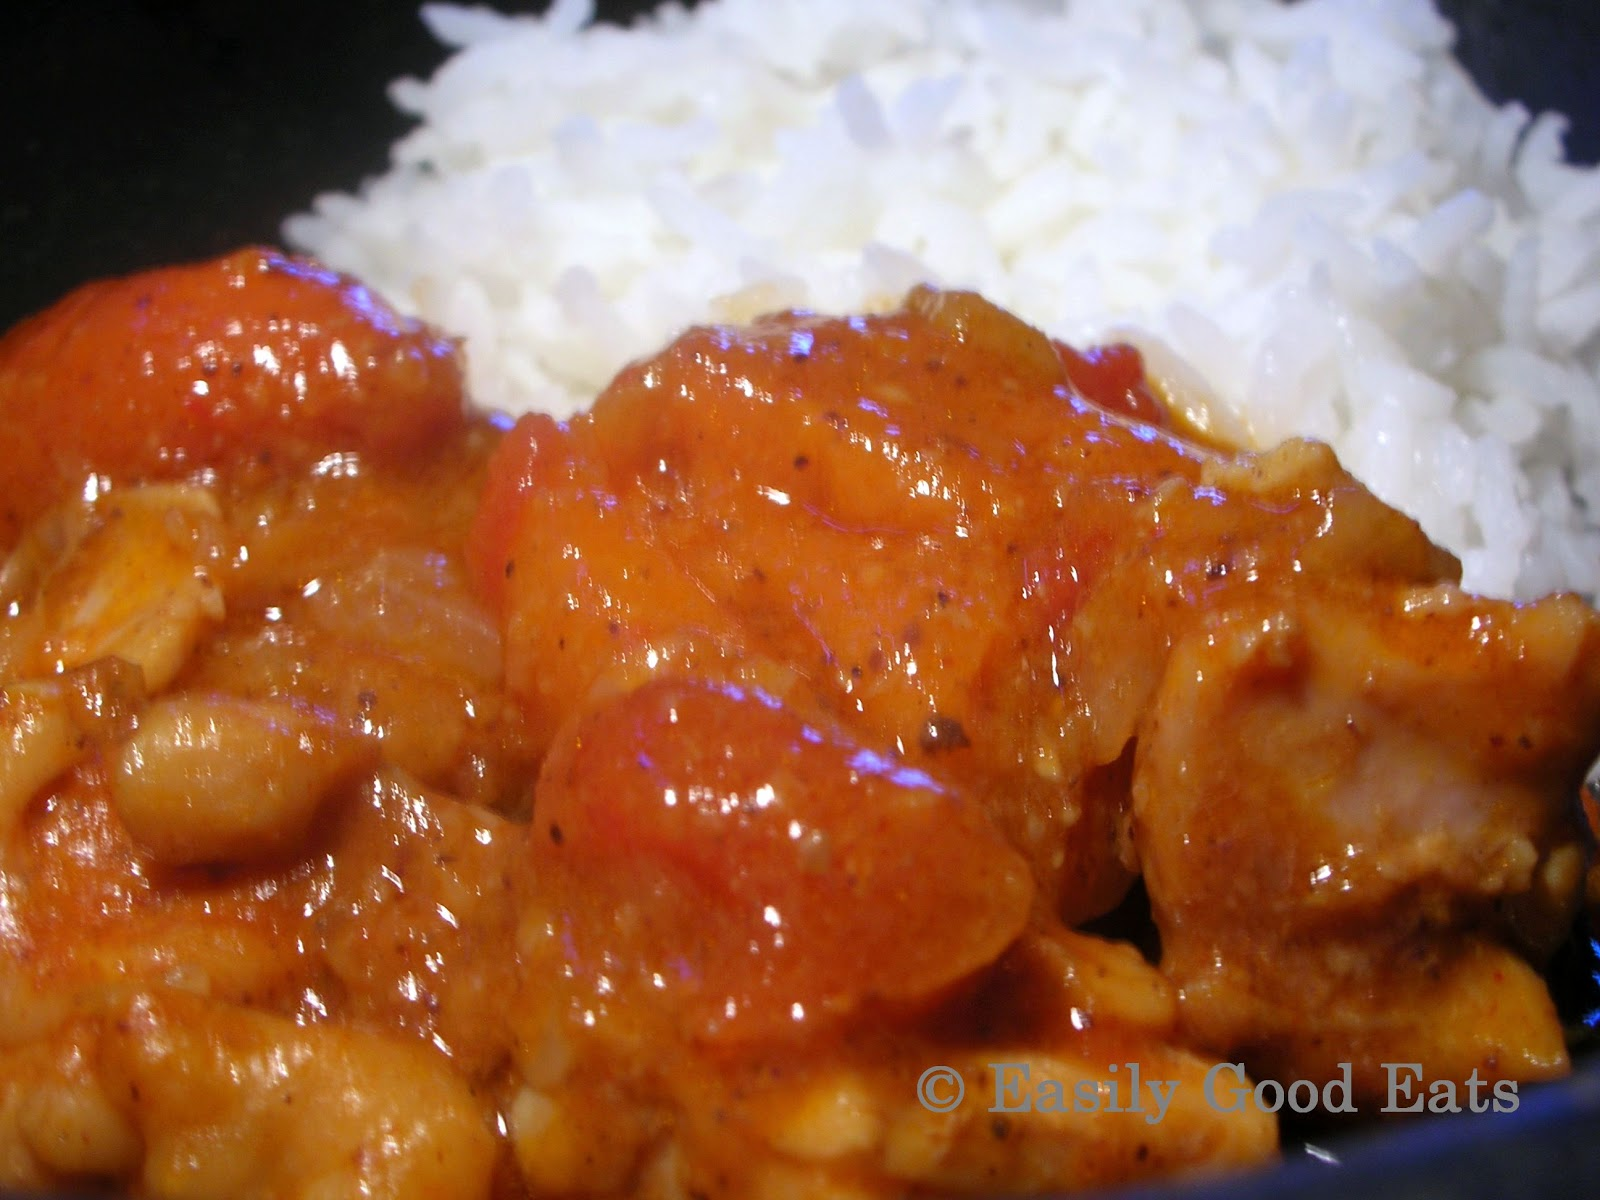 Easily Good Eats: Jardaloo ma Murghi (Chicken in Apricots) Recipe